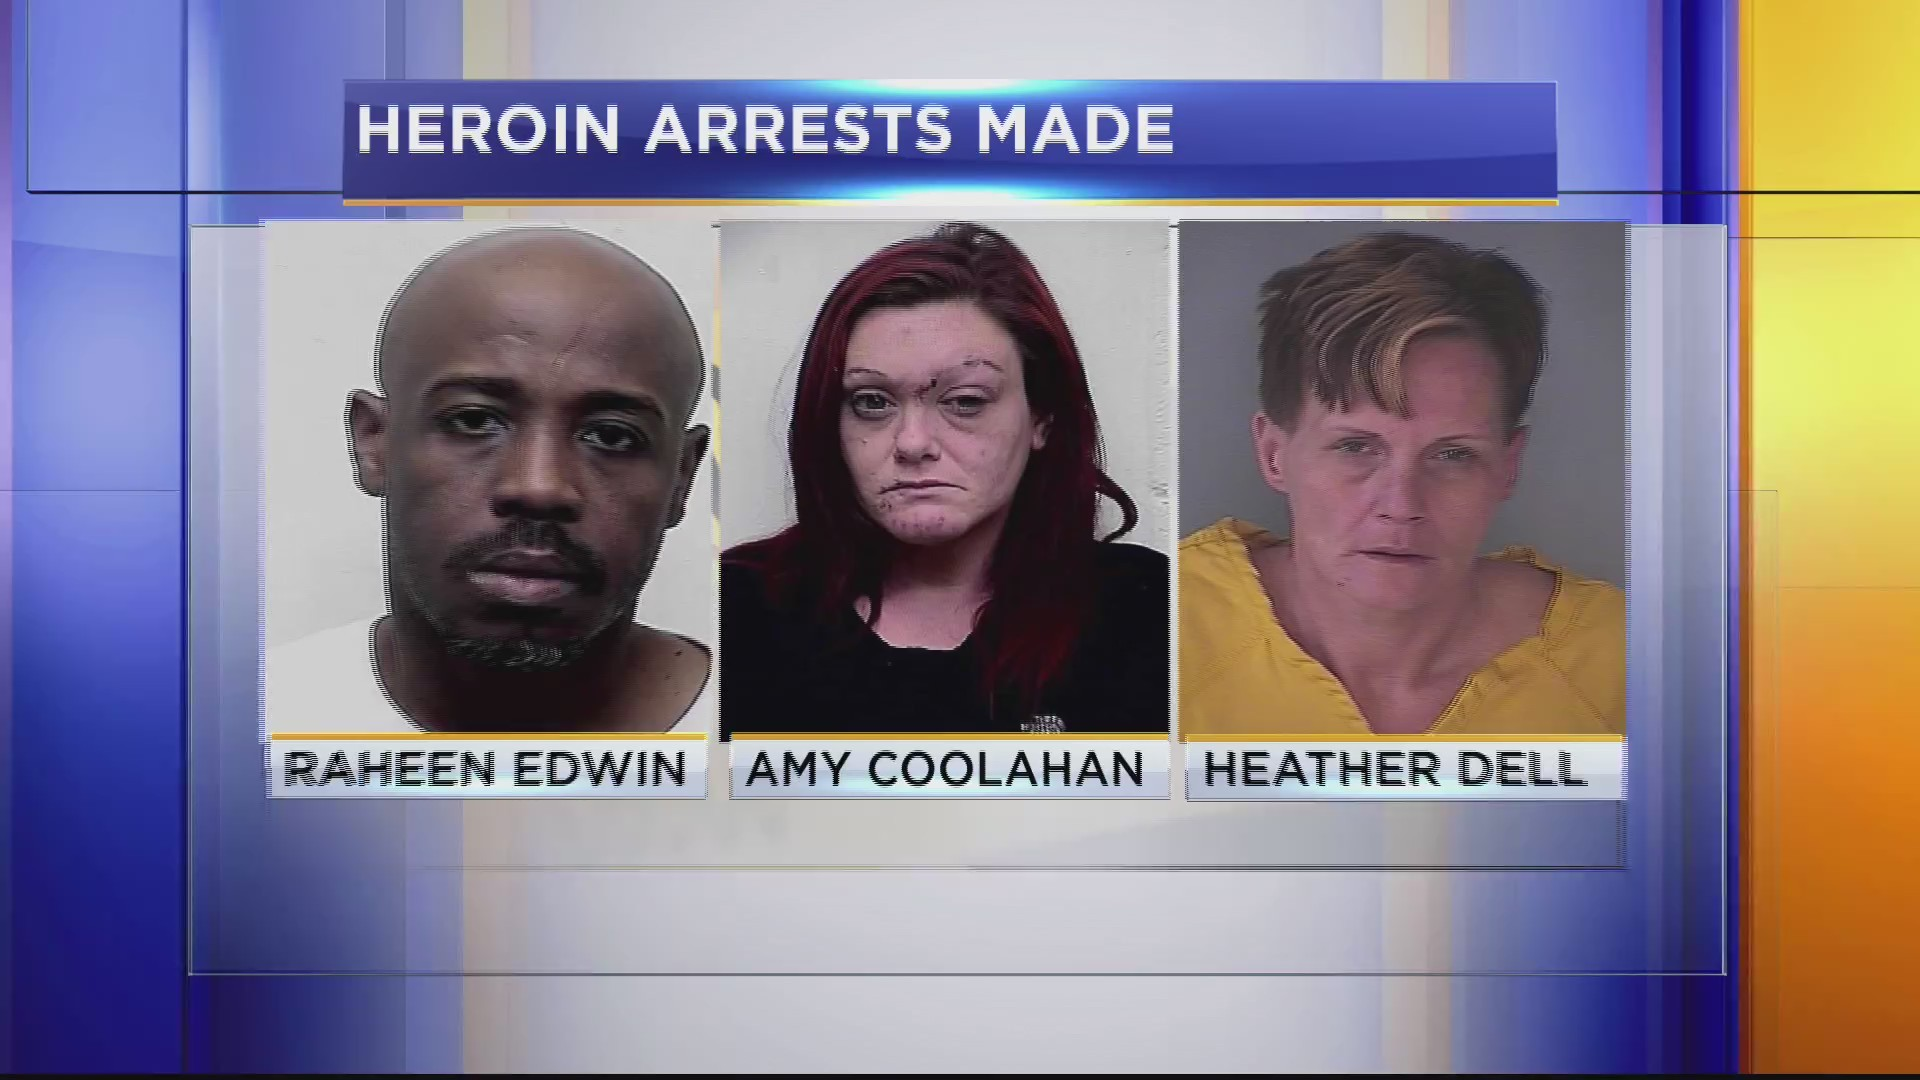 HEROIN ARRESTS MADE